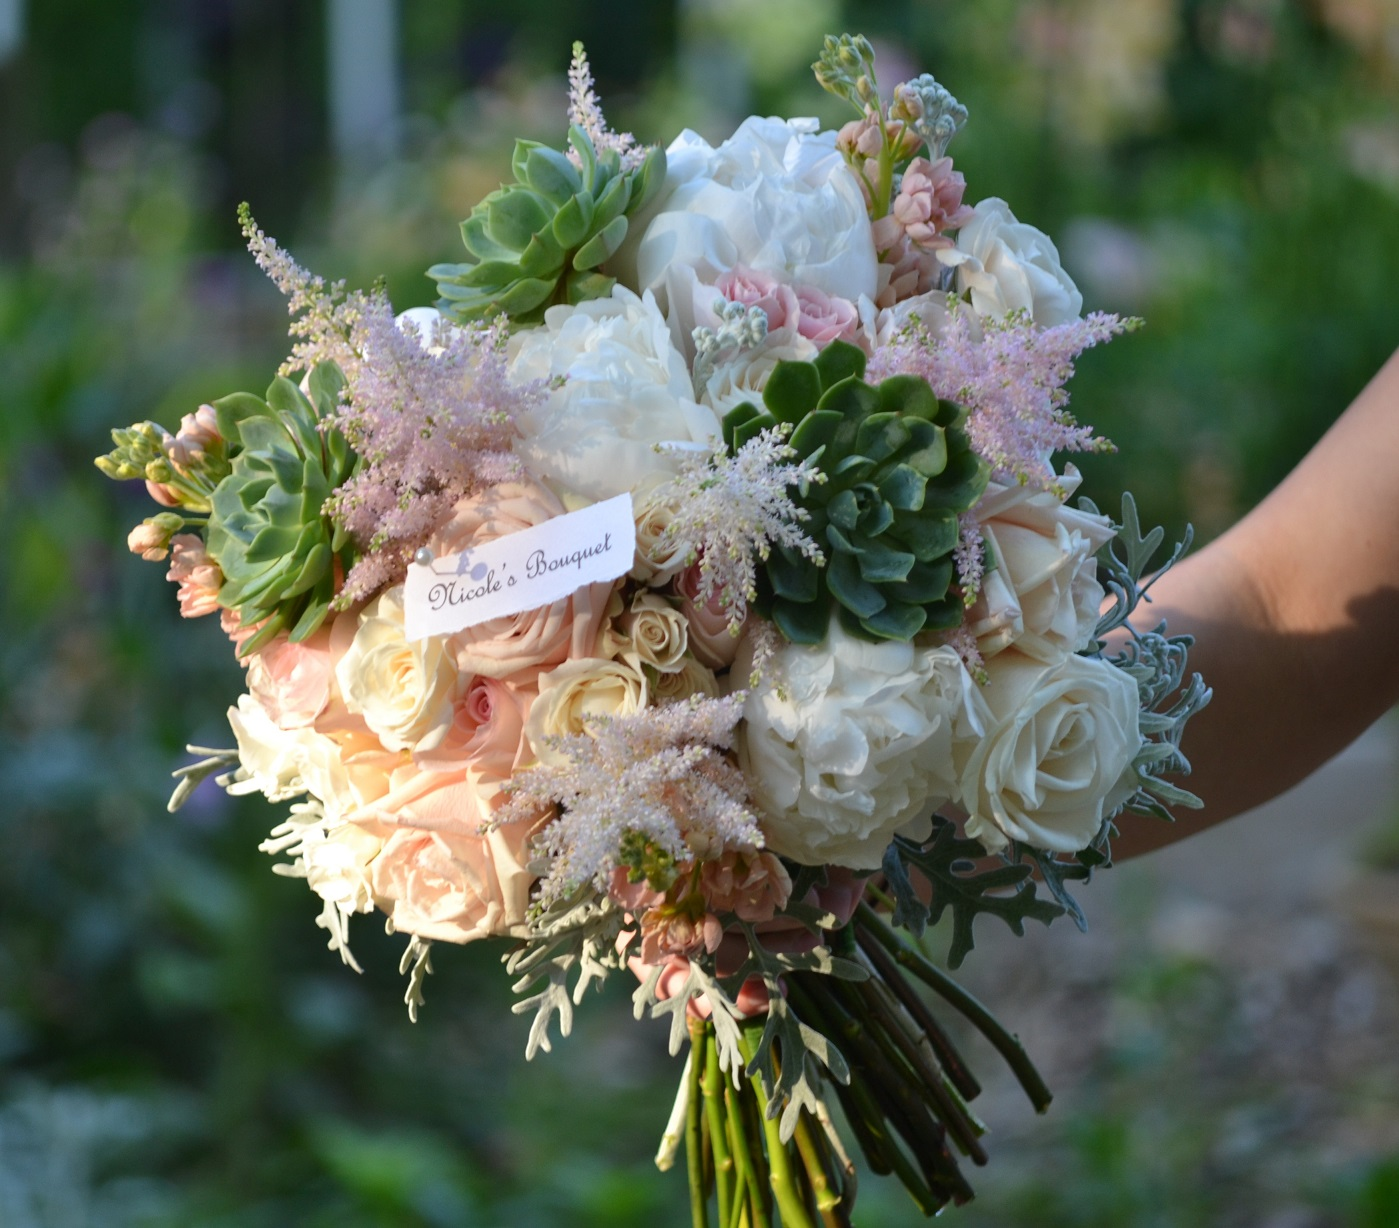 Wedding Flowers In May: Wedding Flowers From Springwell: May 2015